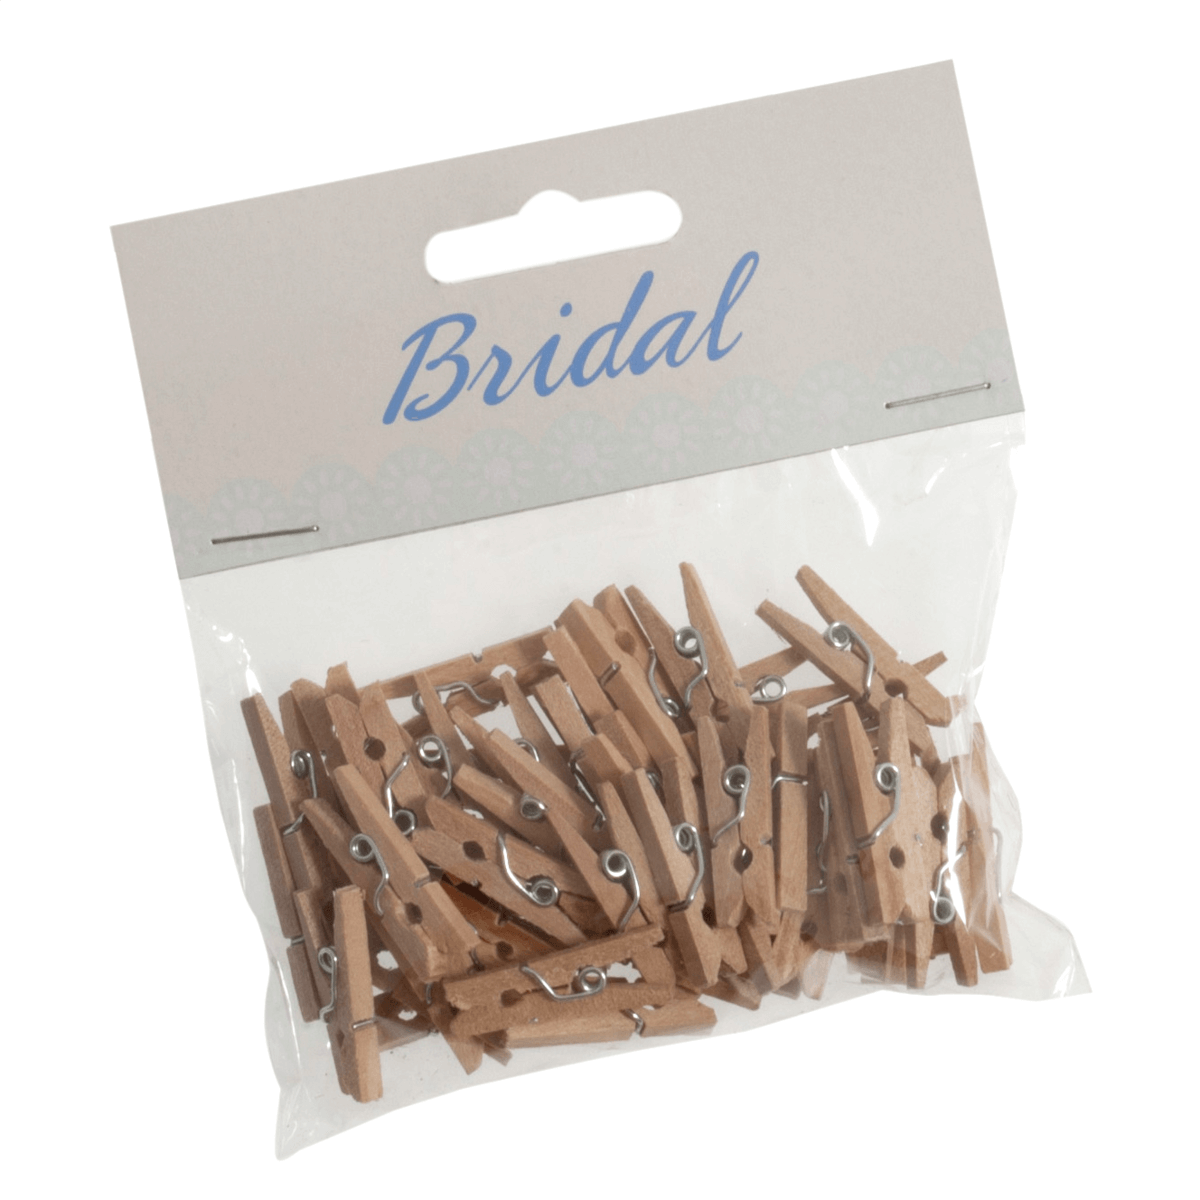 45 x Bridal Natural Wood 25mm Craft Pegs Embellishments Wedding